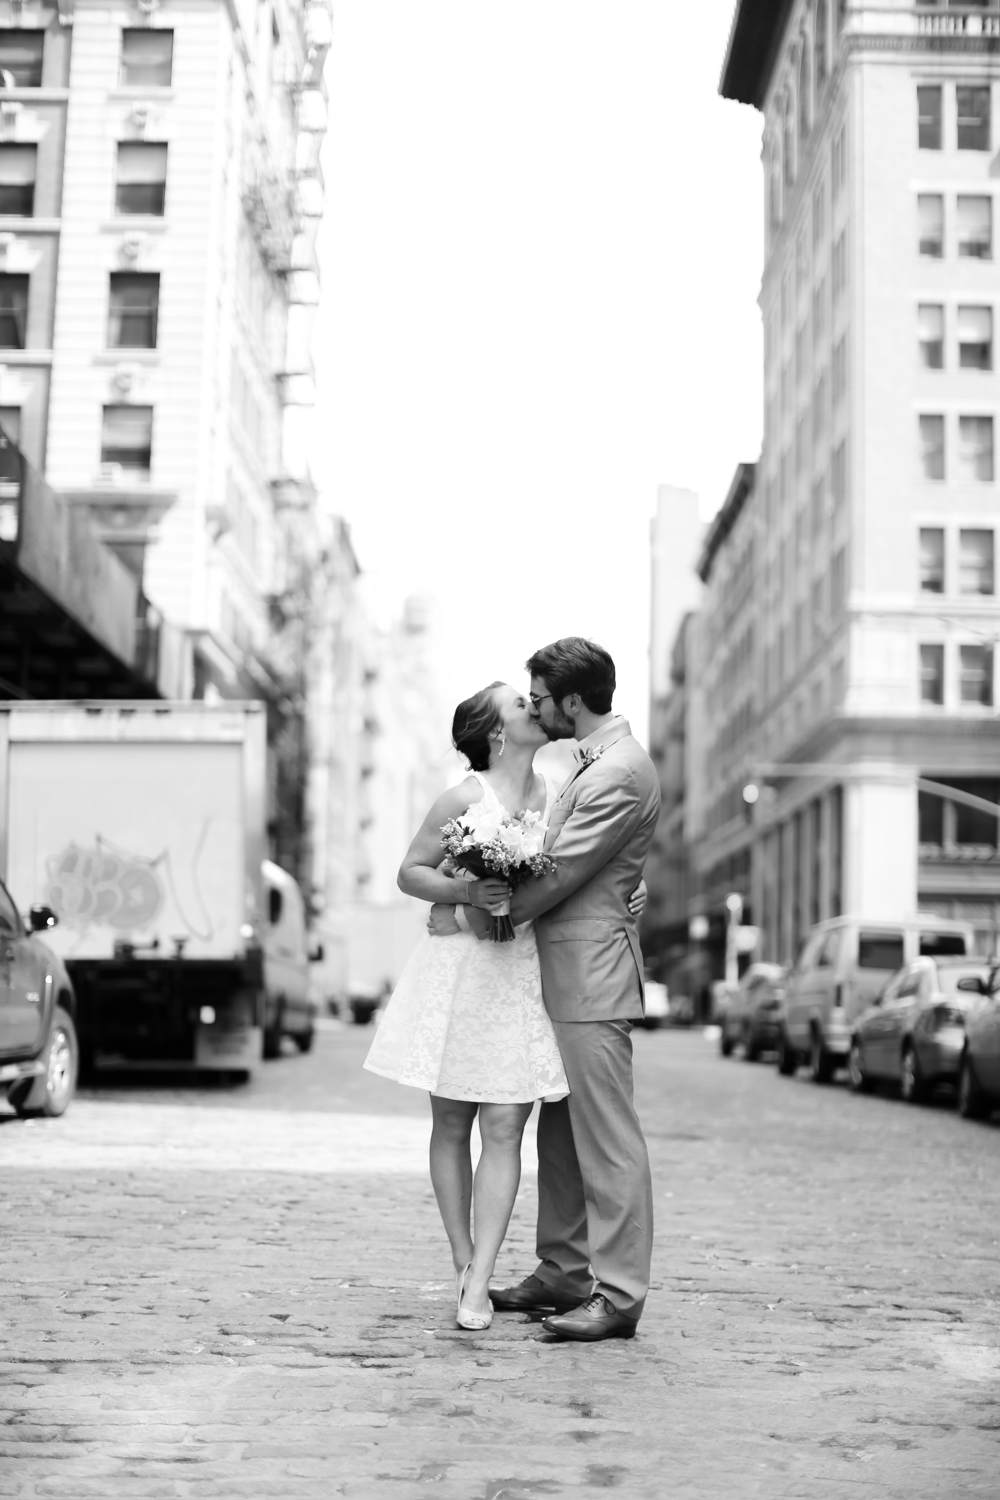 Black and white NYC wedding photography